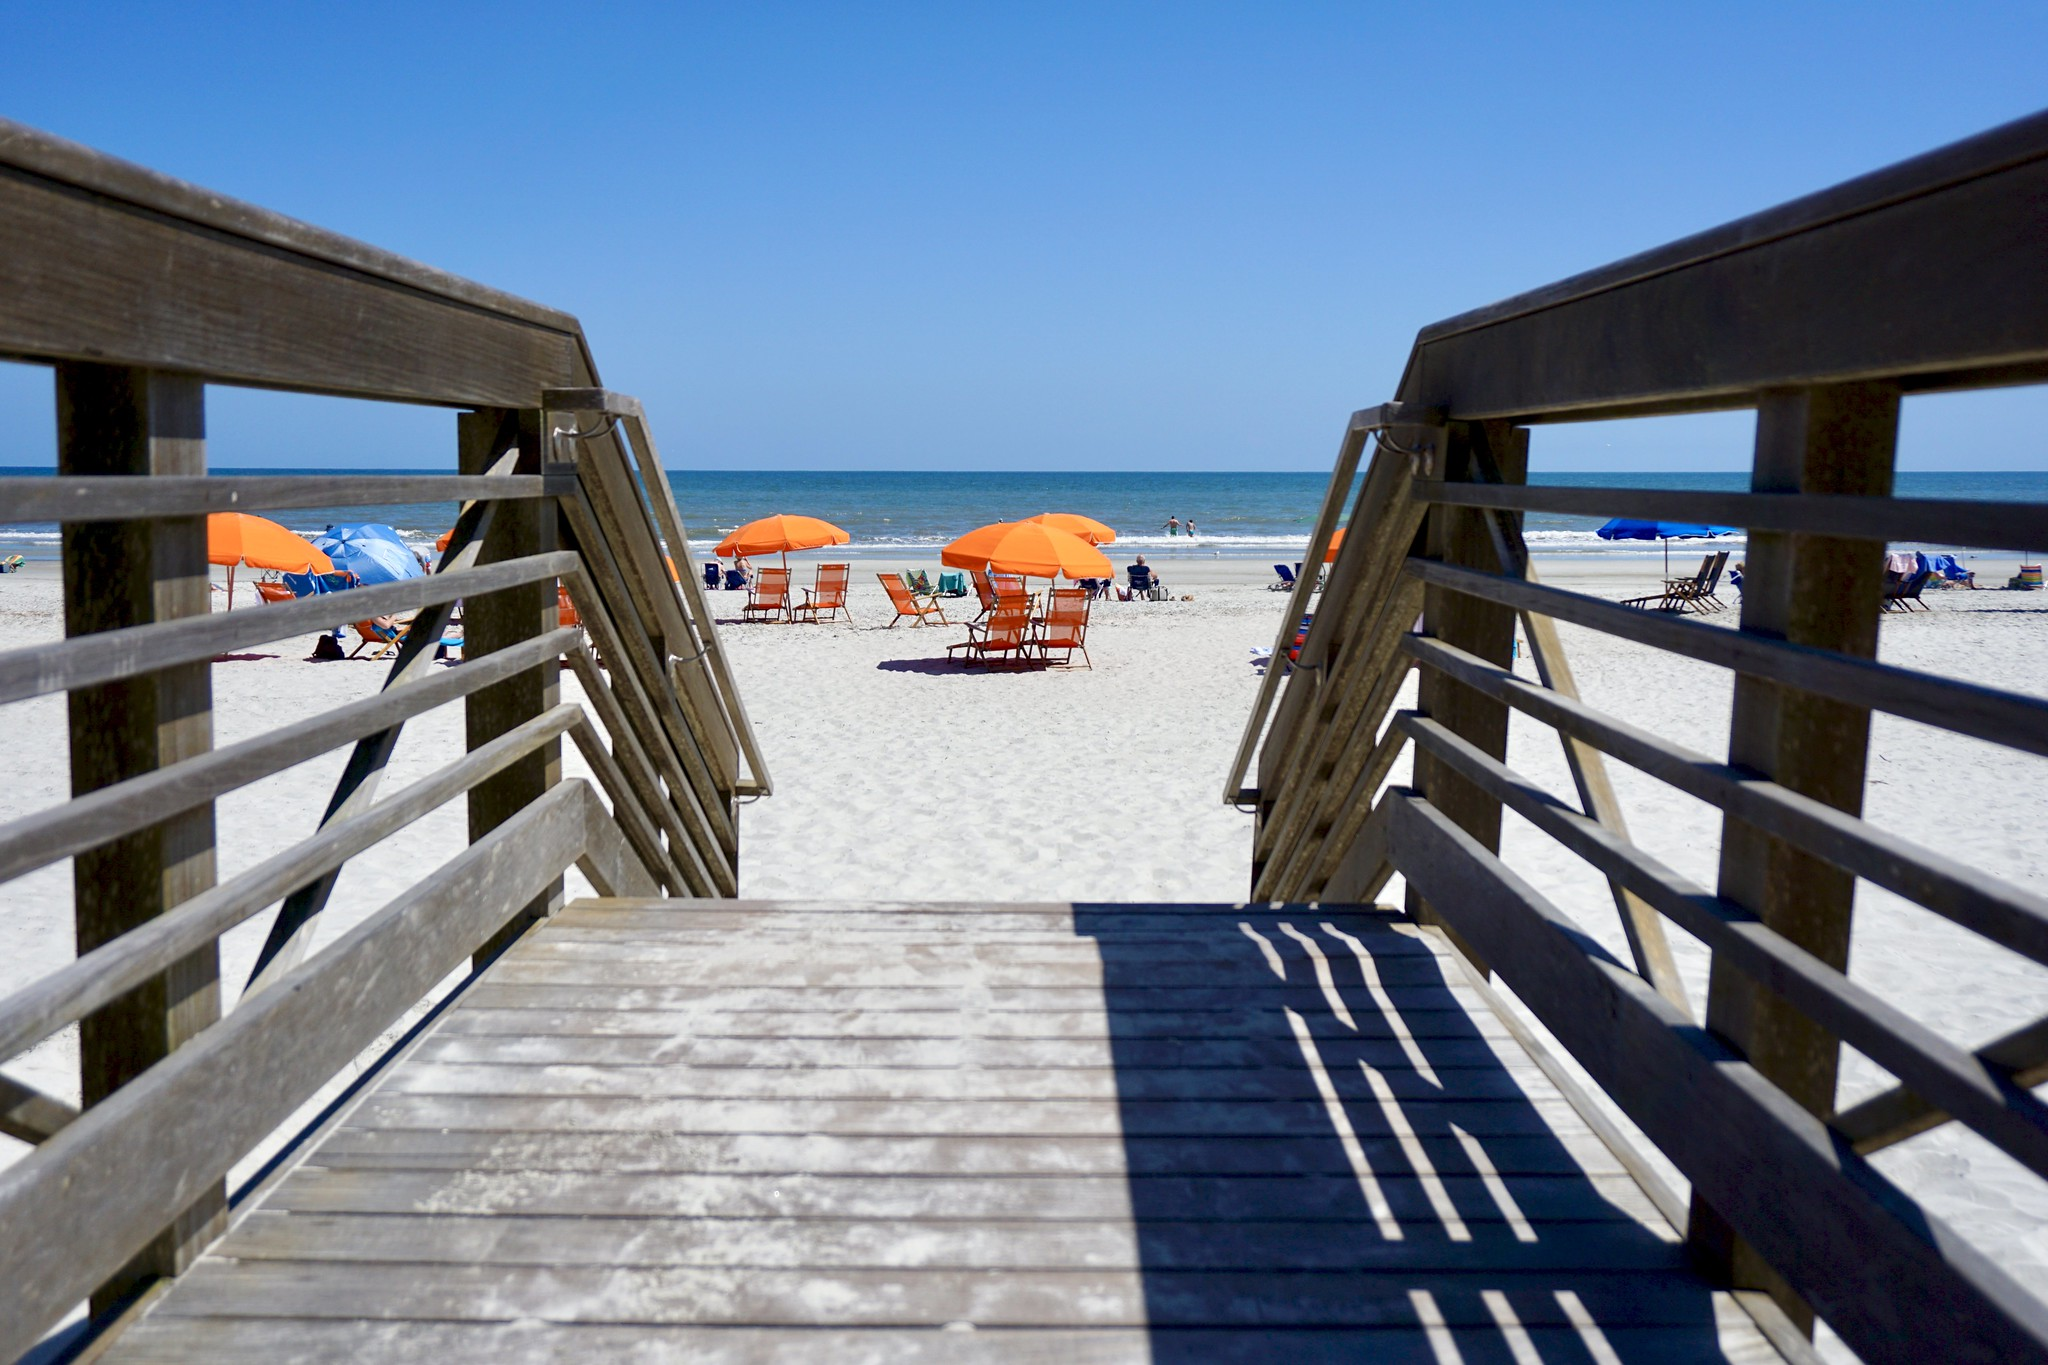 Best Beaches In Hilton Head Sc For 2021 South Carolina Beaches Miss, south carolina on wn network delivers the latest videos and editable pages for news & events, including entertainment, music, sports, science and more, sign up and share your playlists. best beaches in hilton head sc for